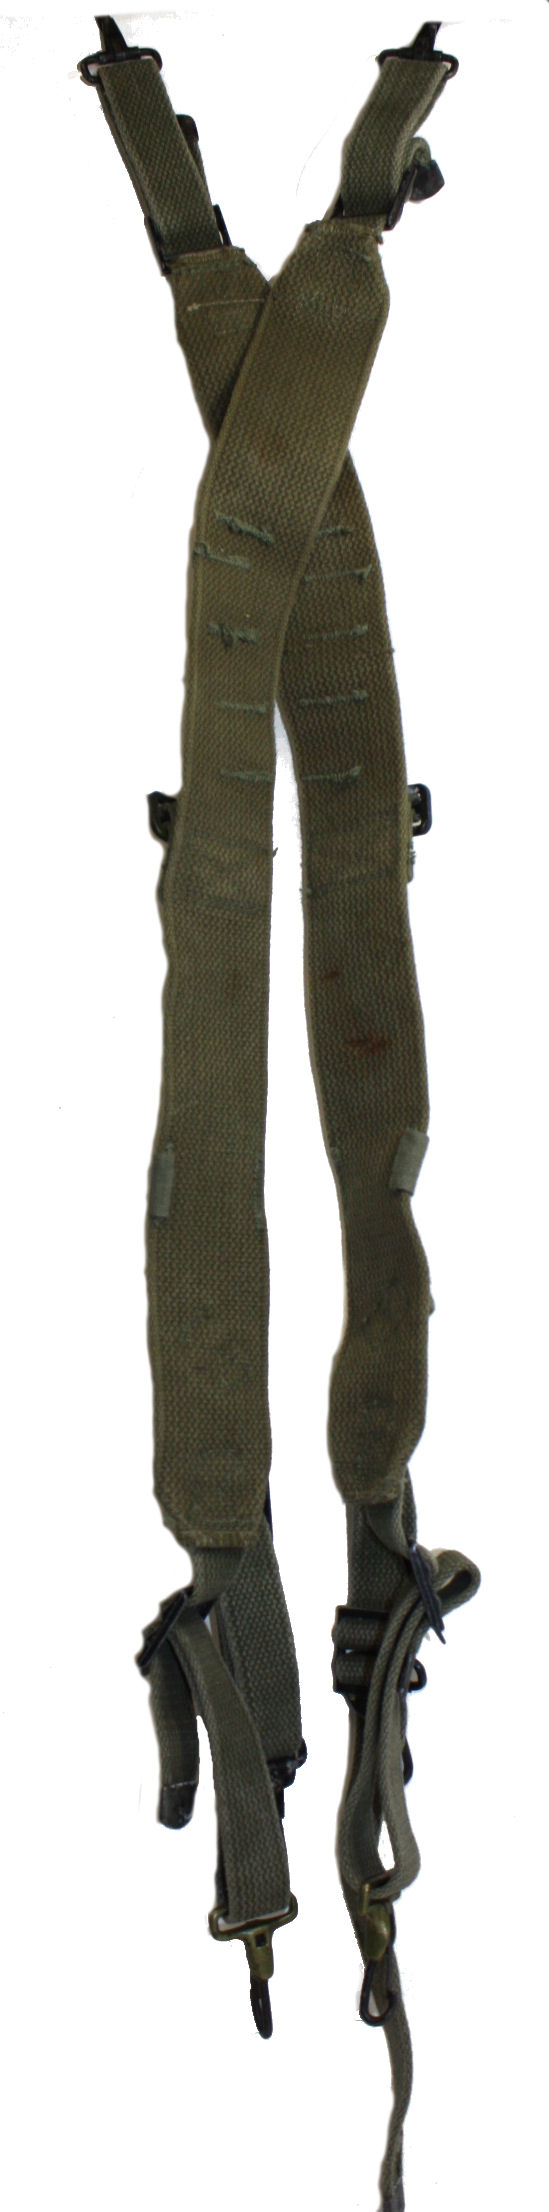 M-1945 Cross Suspenders, No Padding